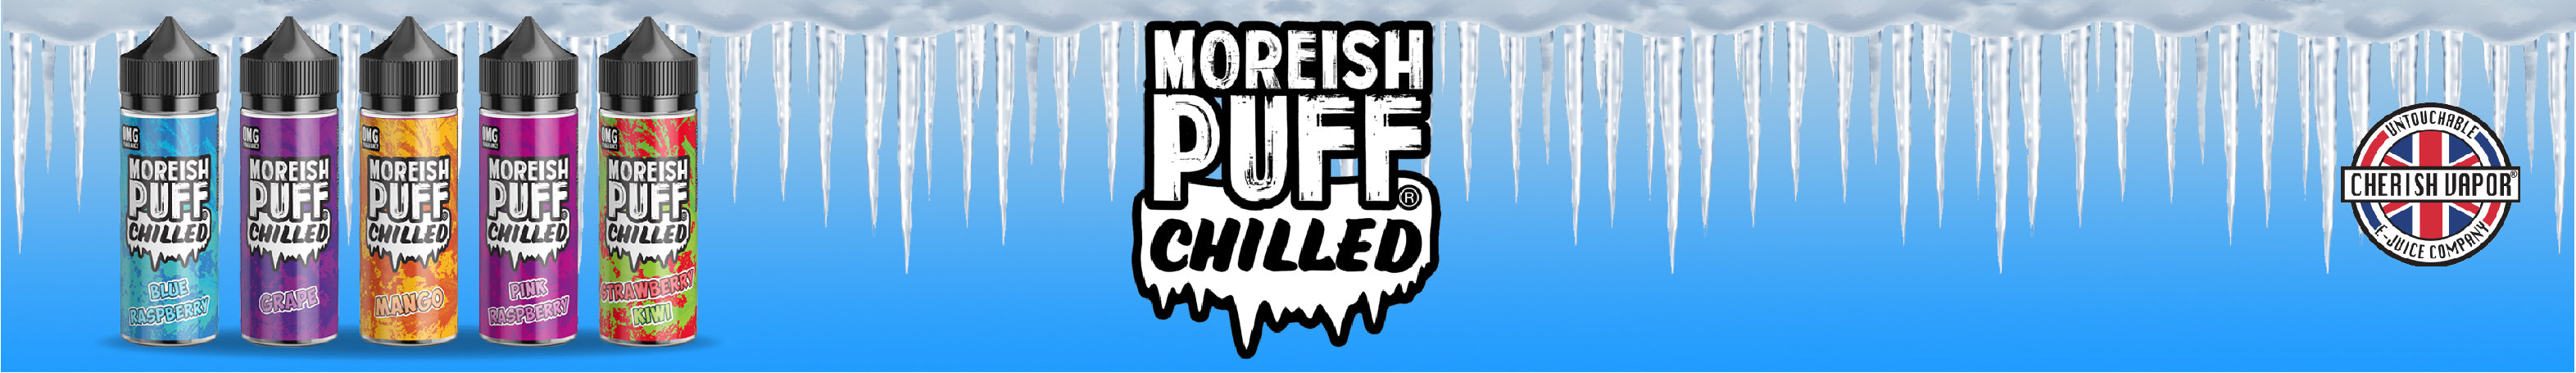 Moreish Puff Chilled